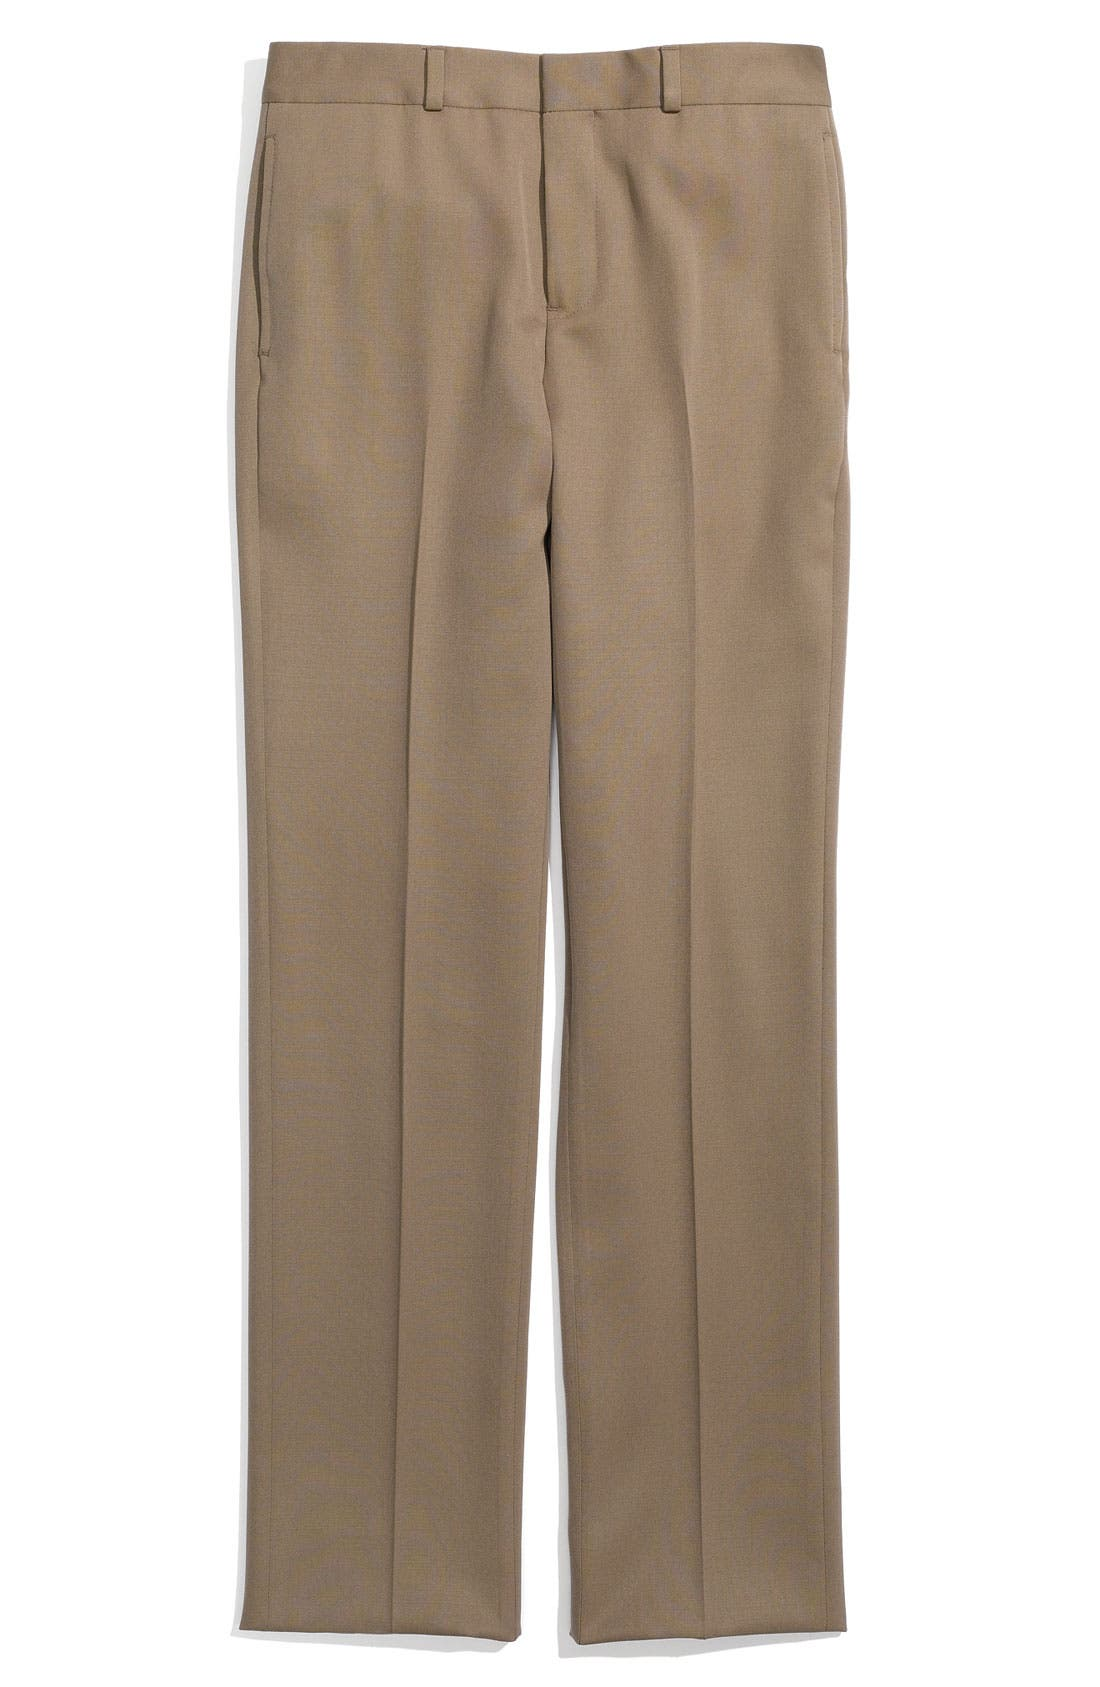 Main Image - Brooks Brothers Flat Front Wool Trousers (Big Boys)